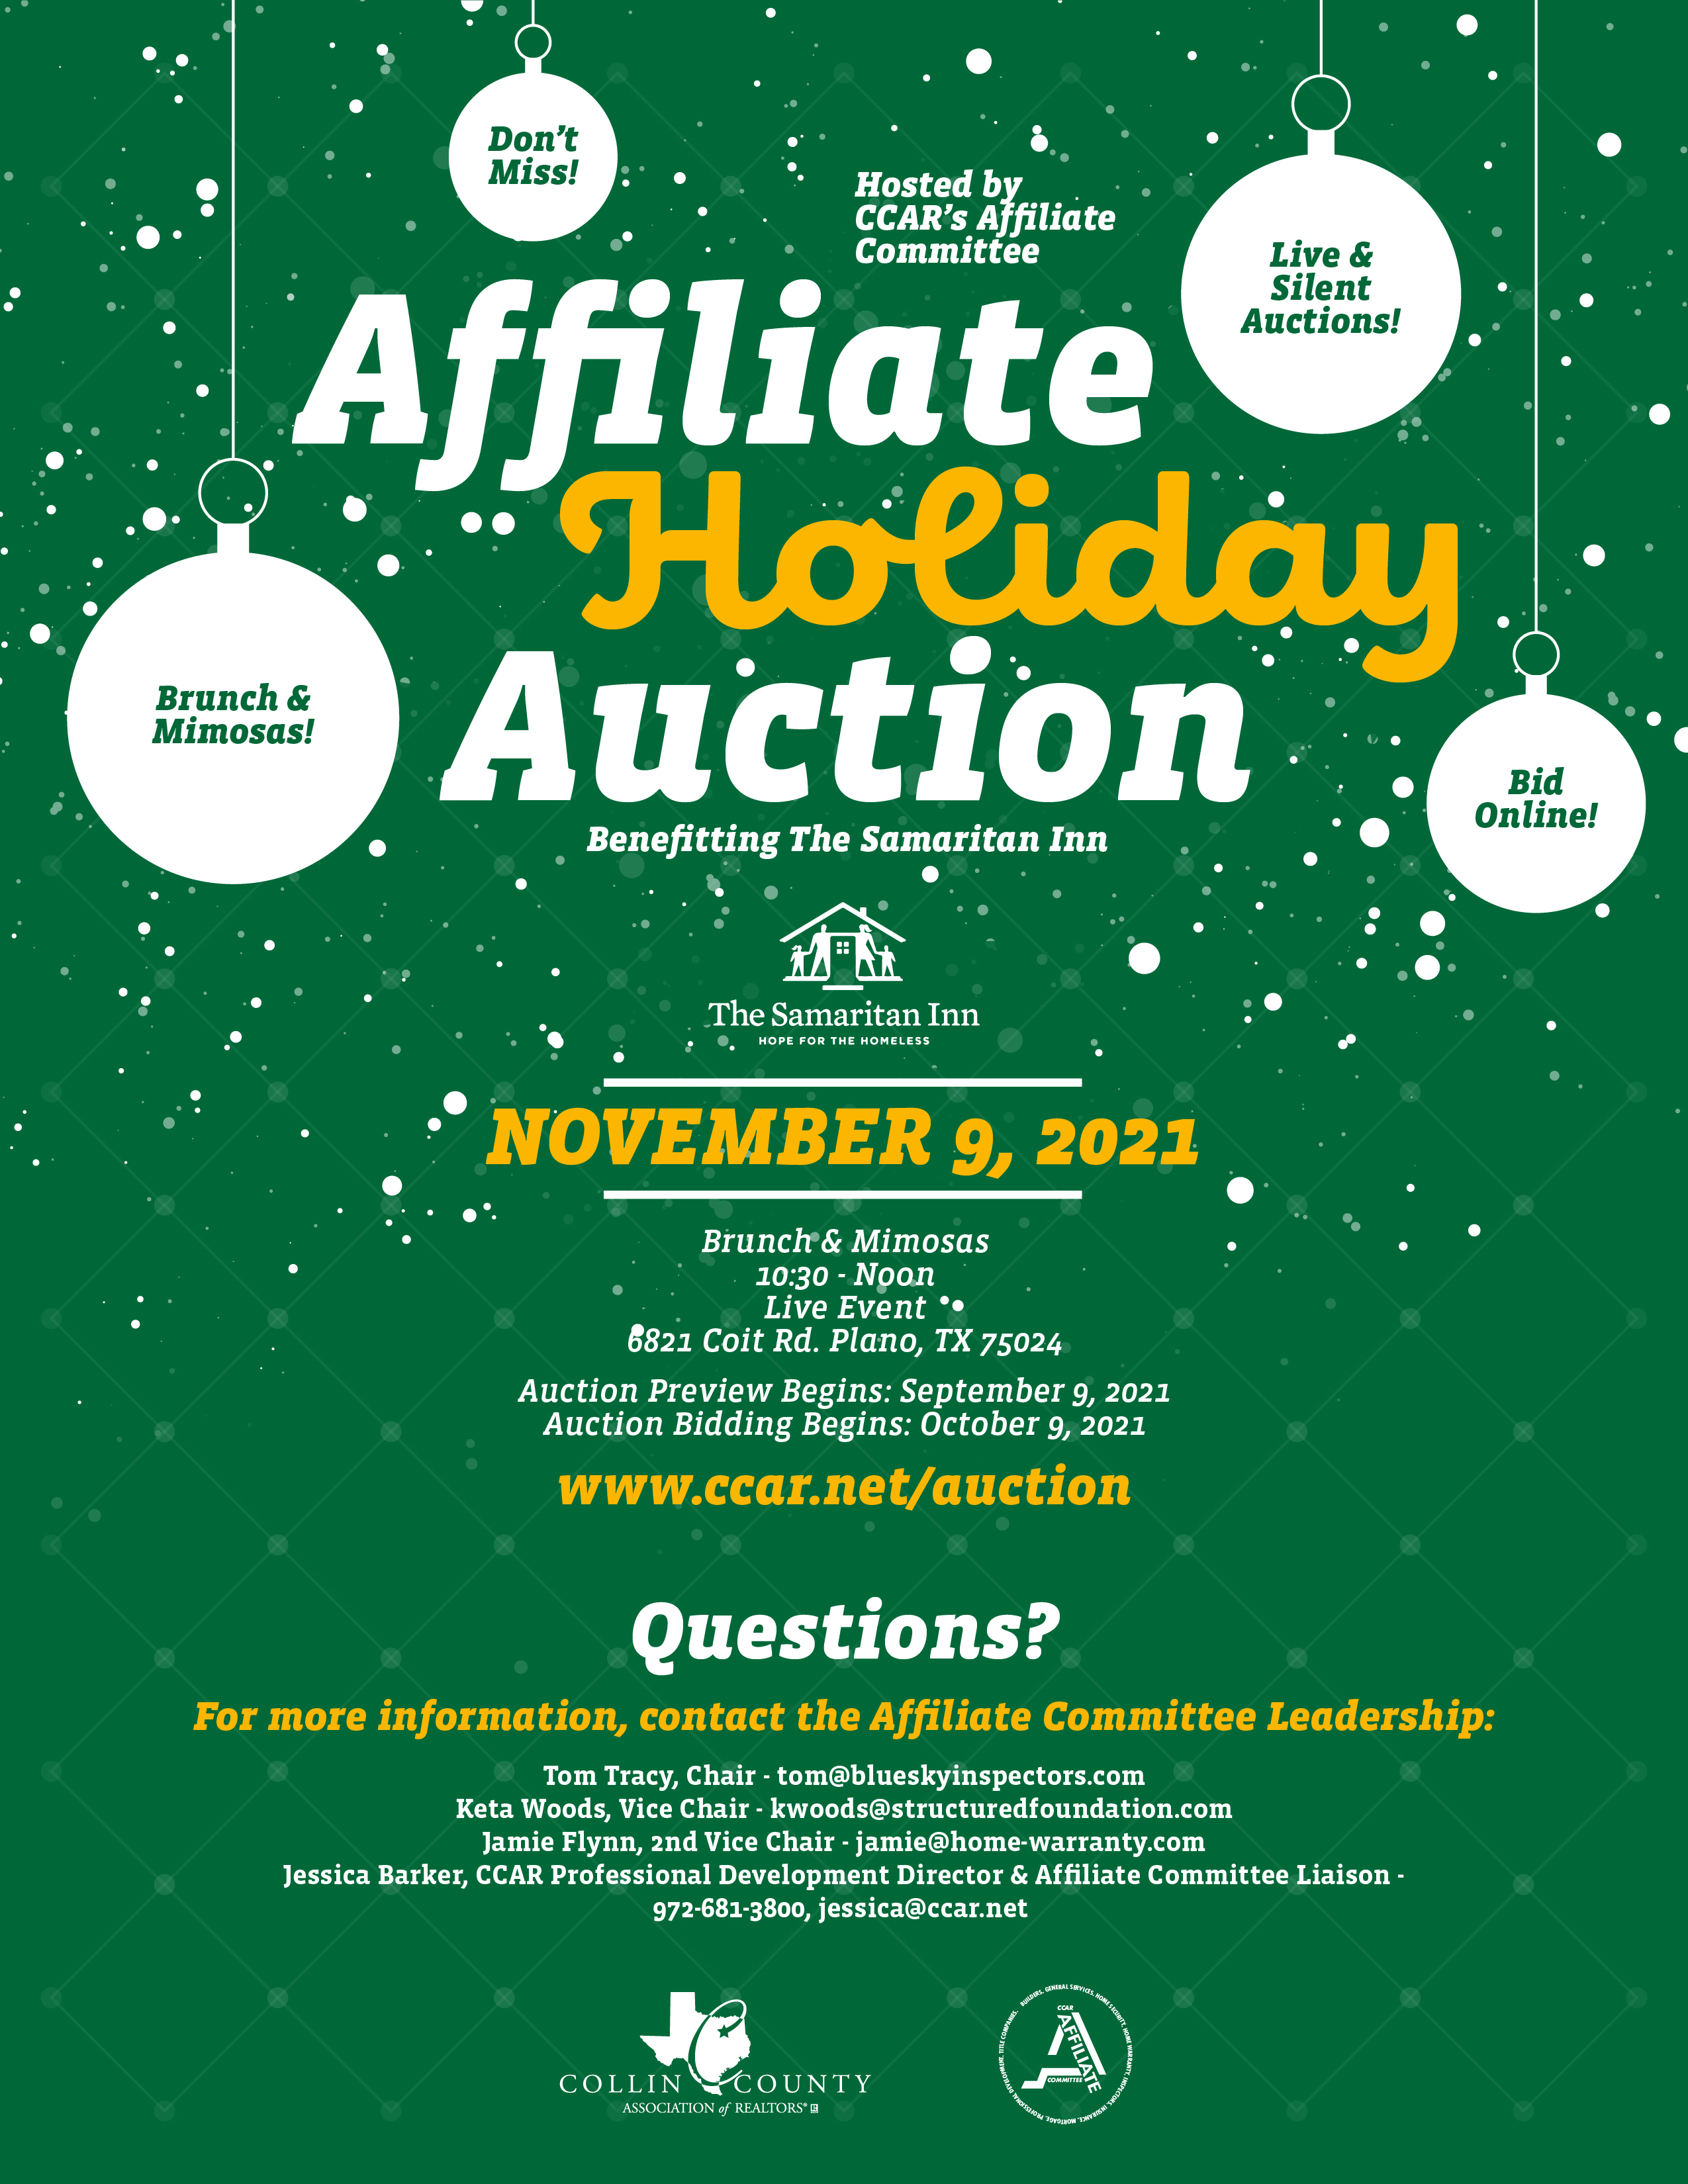 2021 Affiliate Holiday Auction Flyer